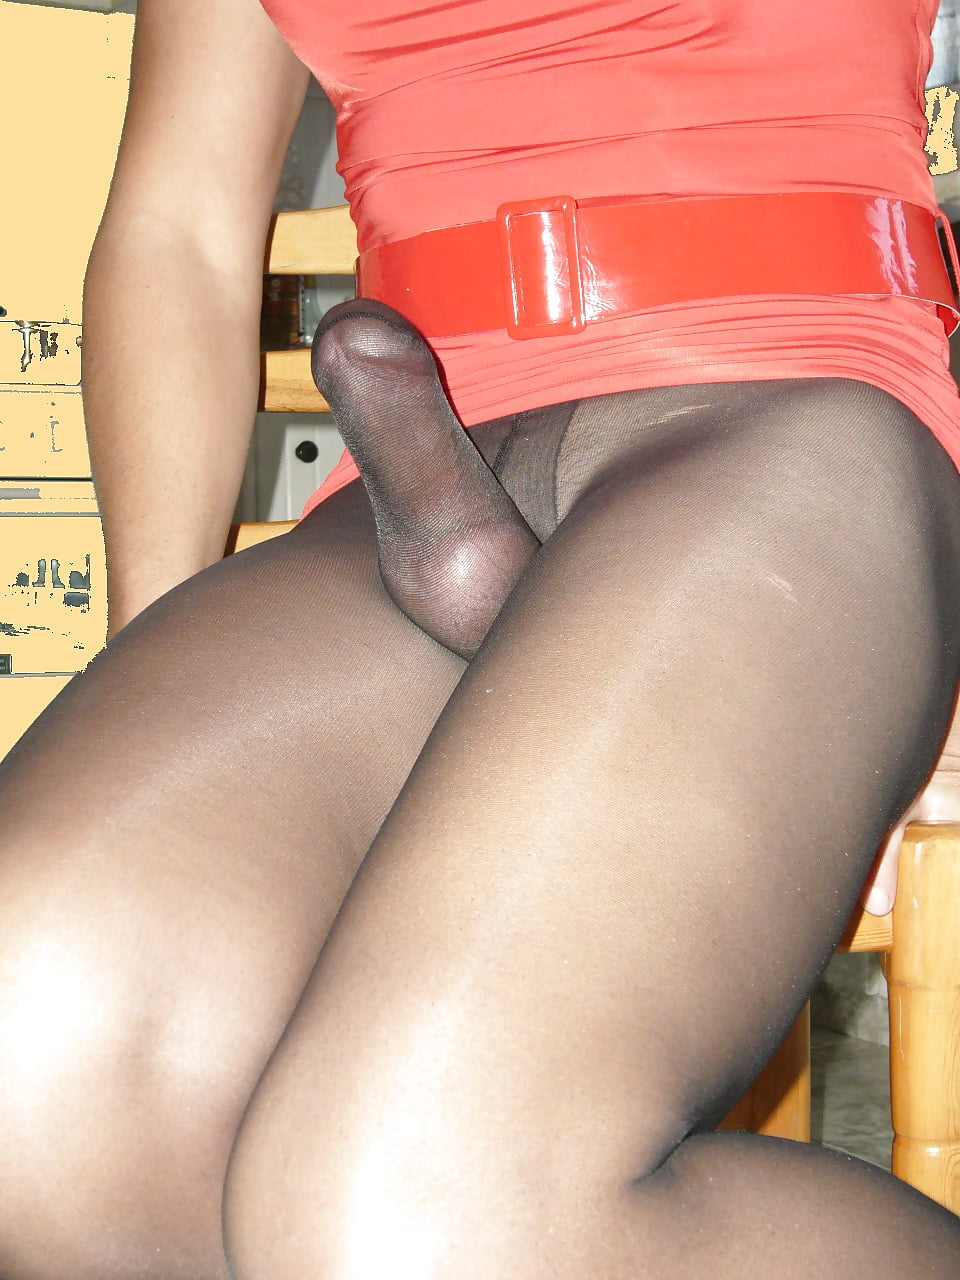 Still on pantyhose porn links, nasty girls handjob